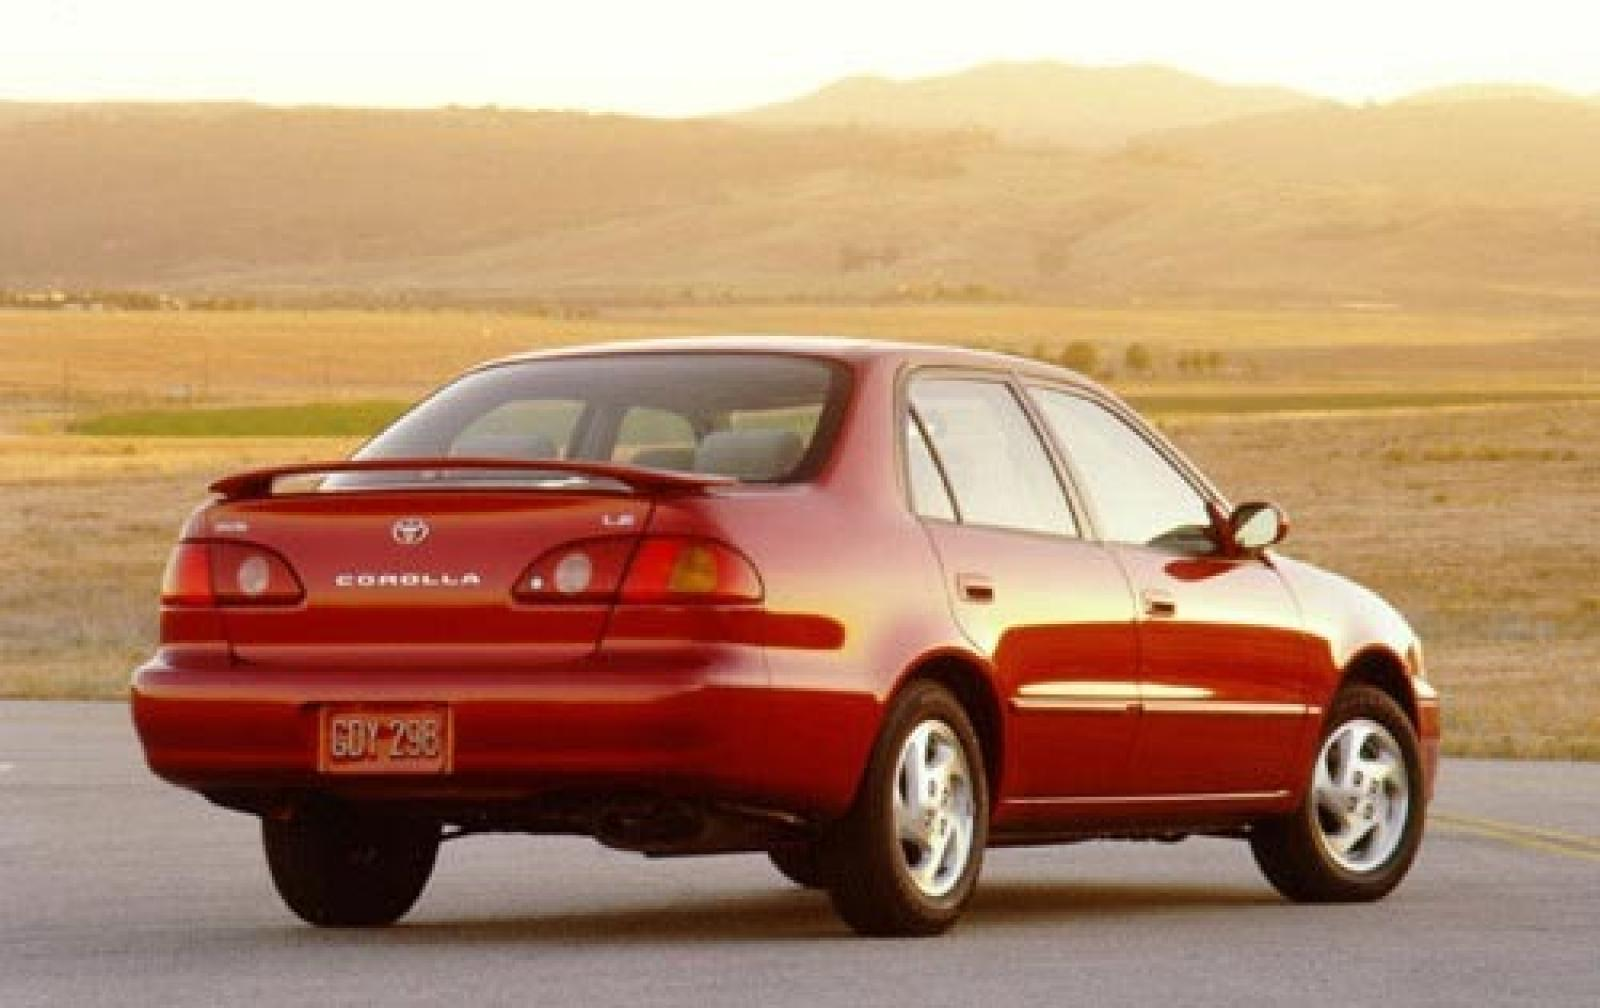 2001 Toyota Corolla Information And Photos Zomb Drive